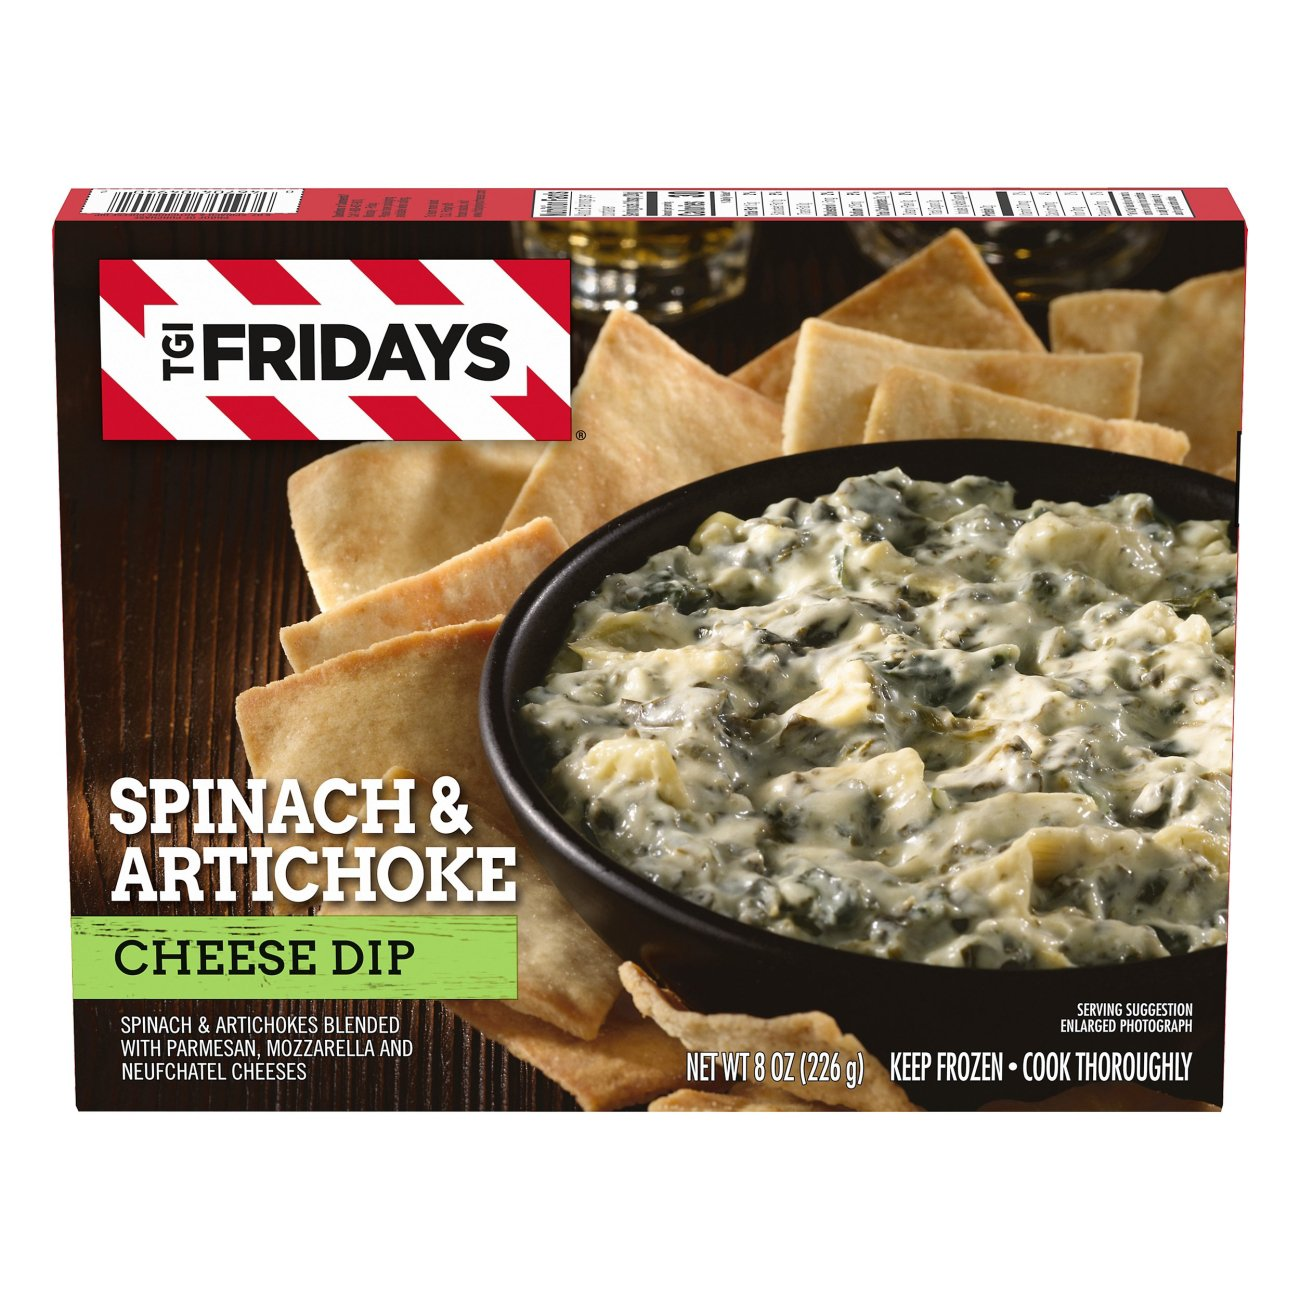 Tgi Fridays Spinach Artichoke Cheese Dip Shop Appetizers At H E B